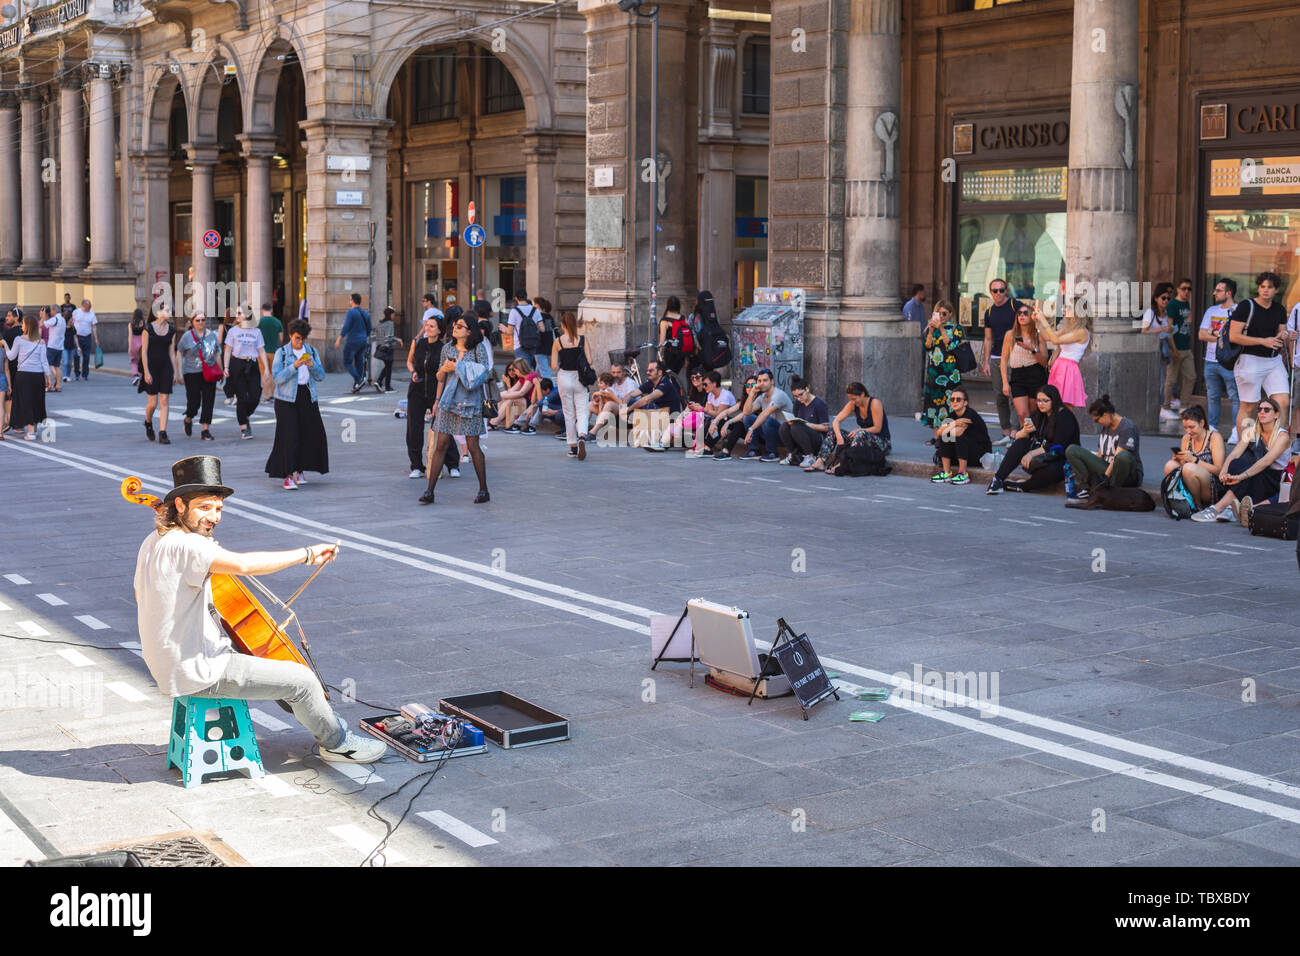 Street artist playing at violoncello in the center of Bologna - Stock Image